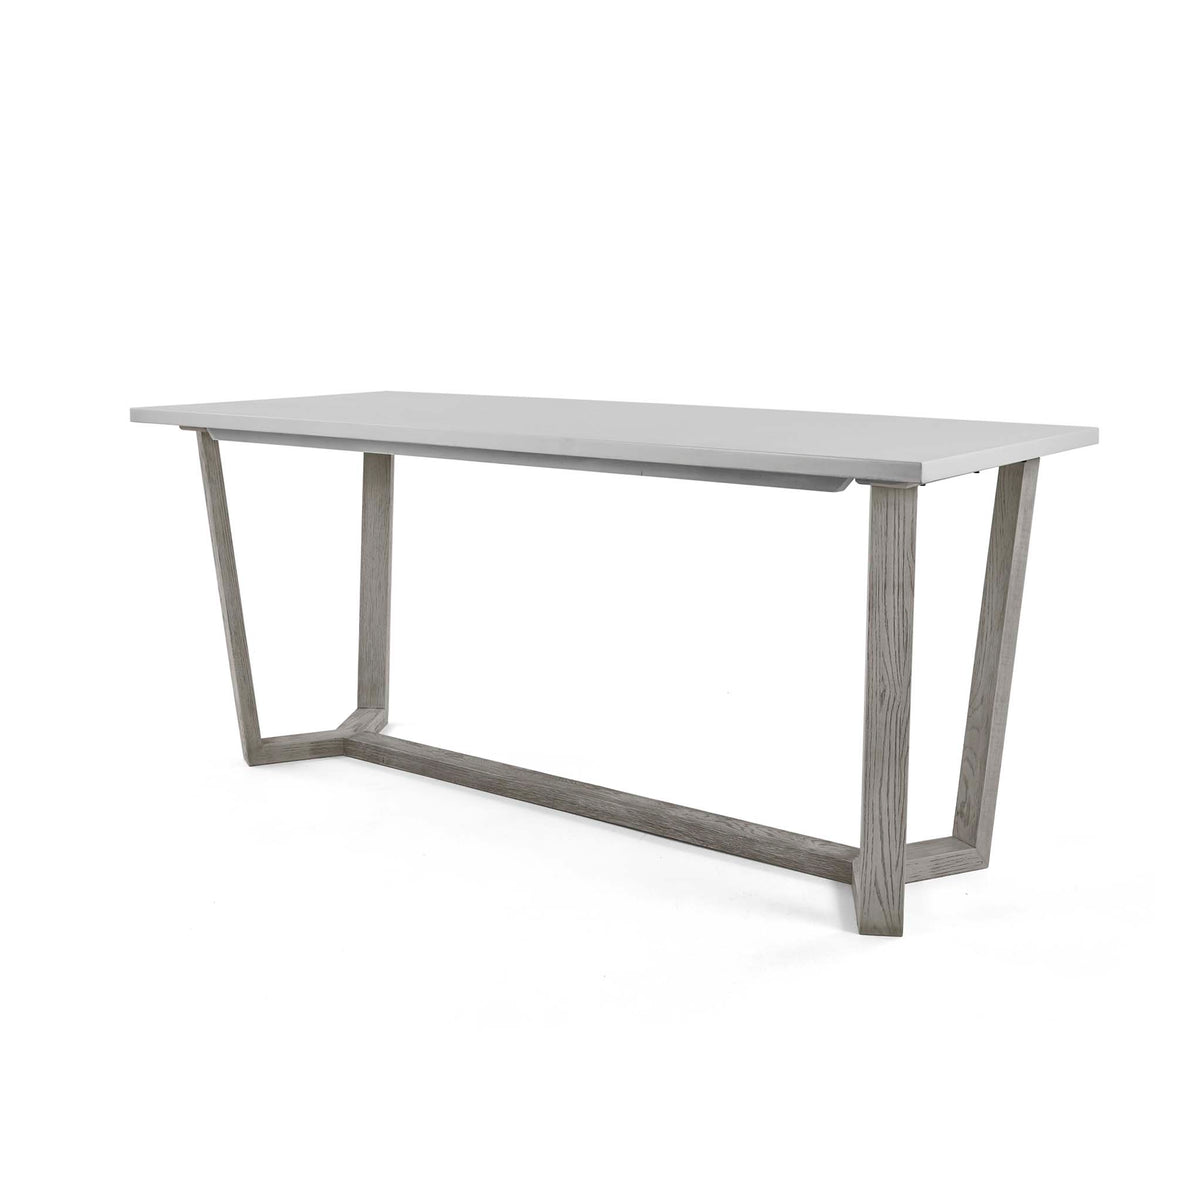 Epsom 150cm Rectangular Dining Table suitable for 4-6 persons